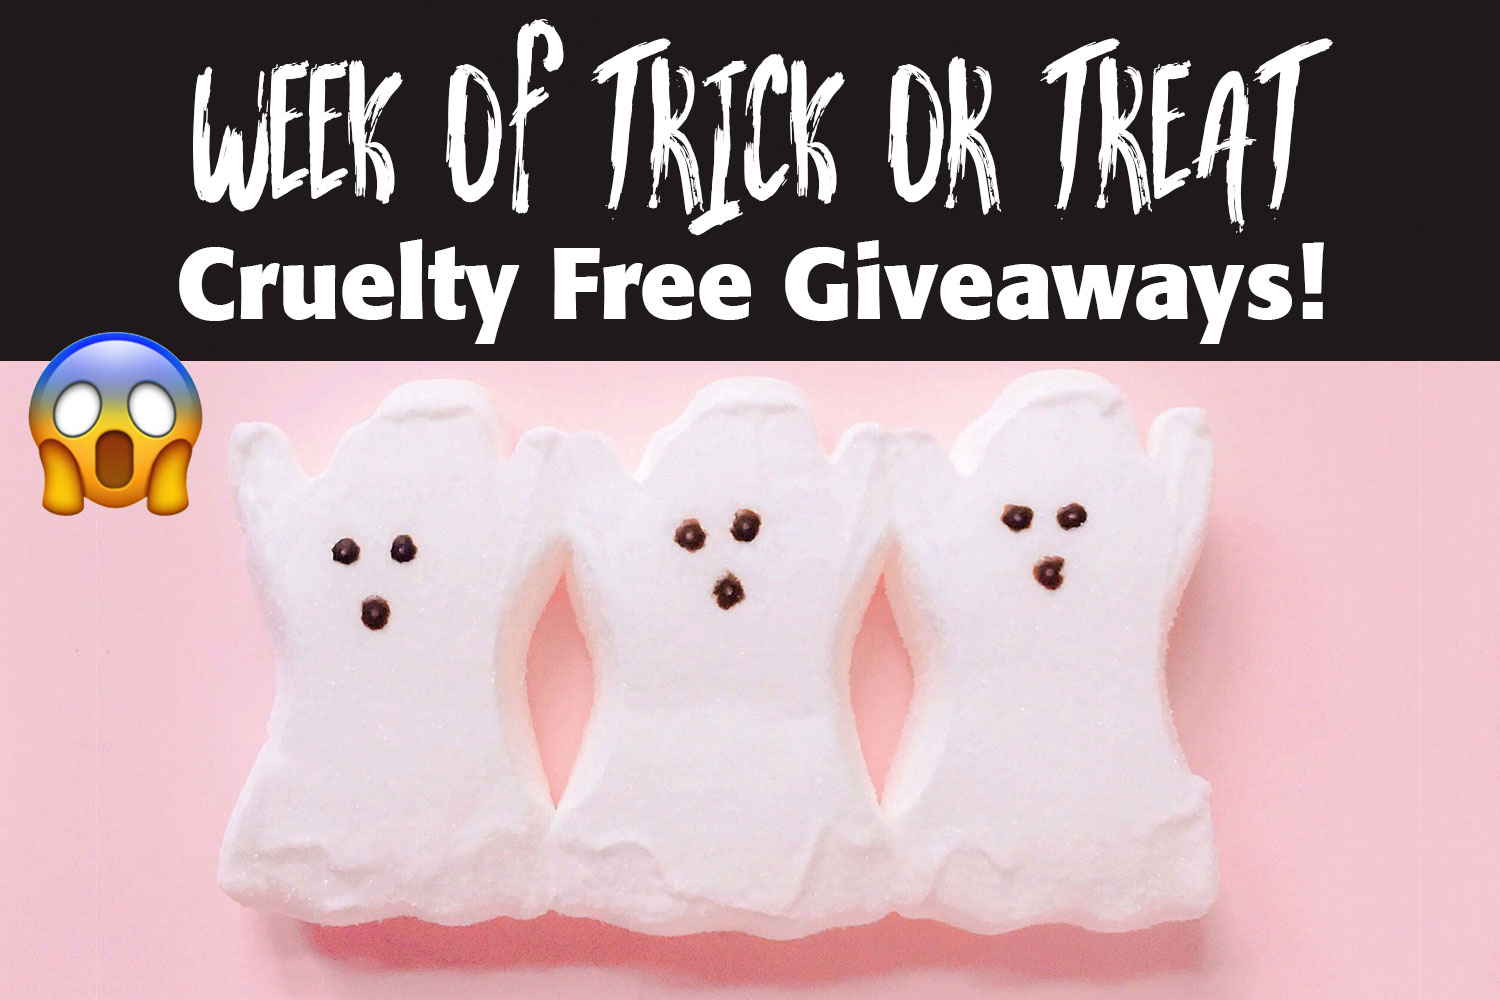 Week of Trick or Treat Giveaways My Beauty Bunny